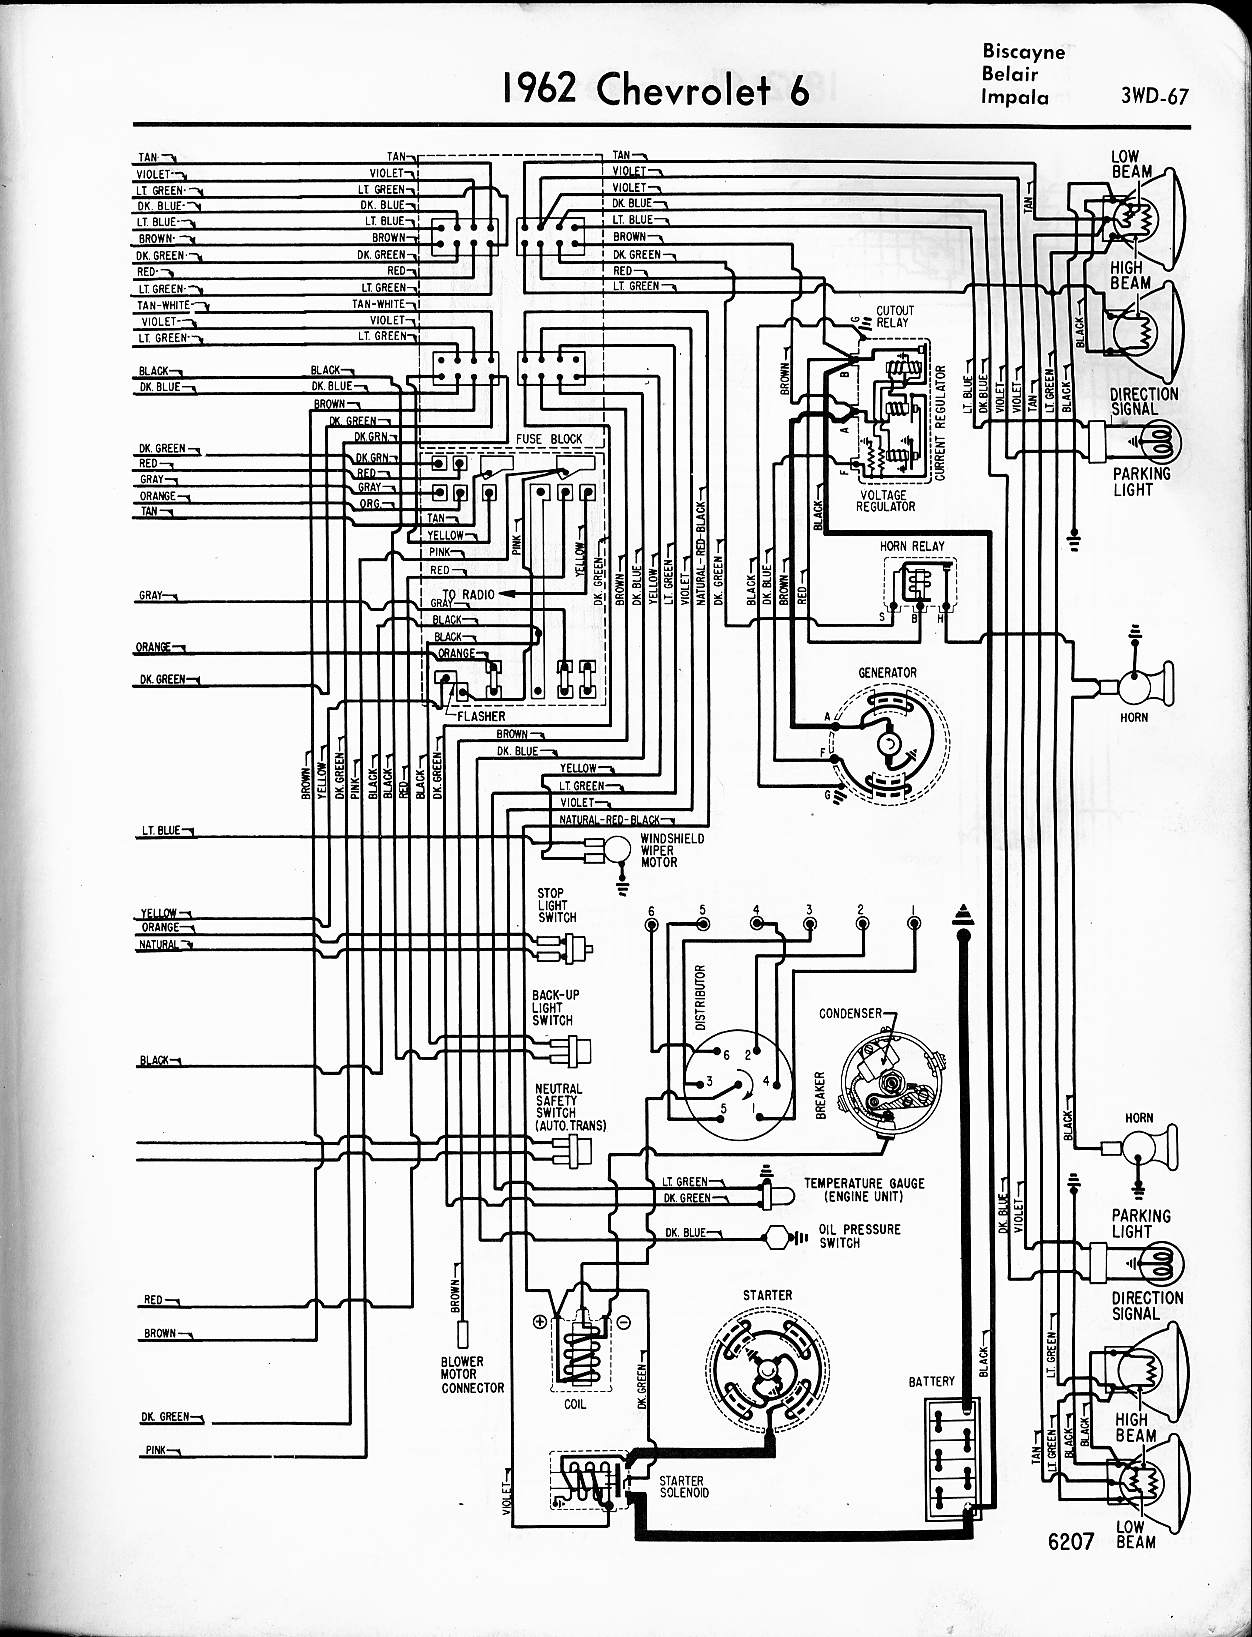 MWireChev62_3WD 067 57 65 chevy wiring diagrams 1962 impala wiring diagram at virtualis.co